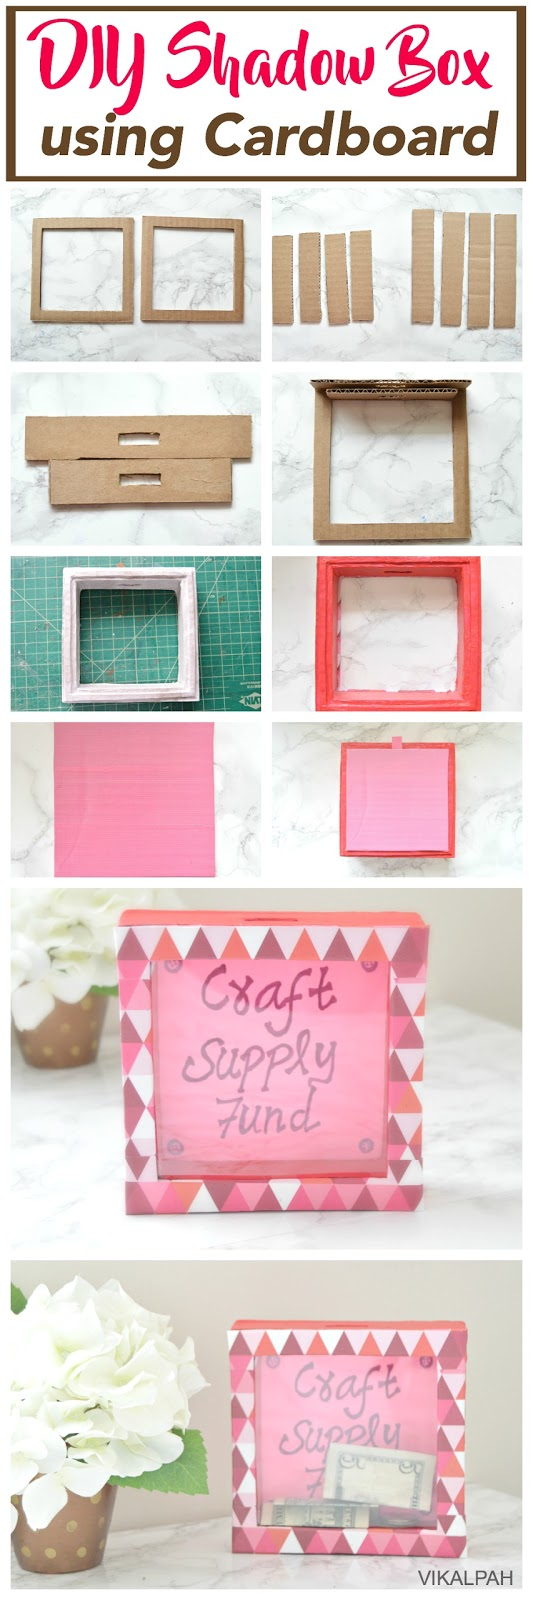 How to make piggy bank shadow box using cardboard